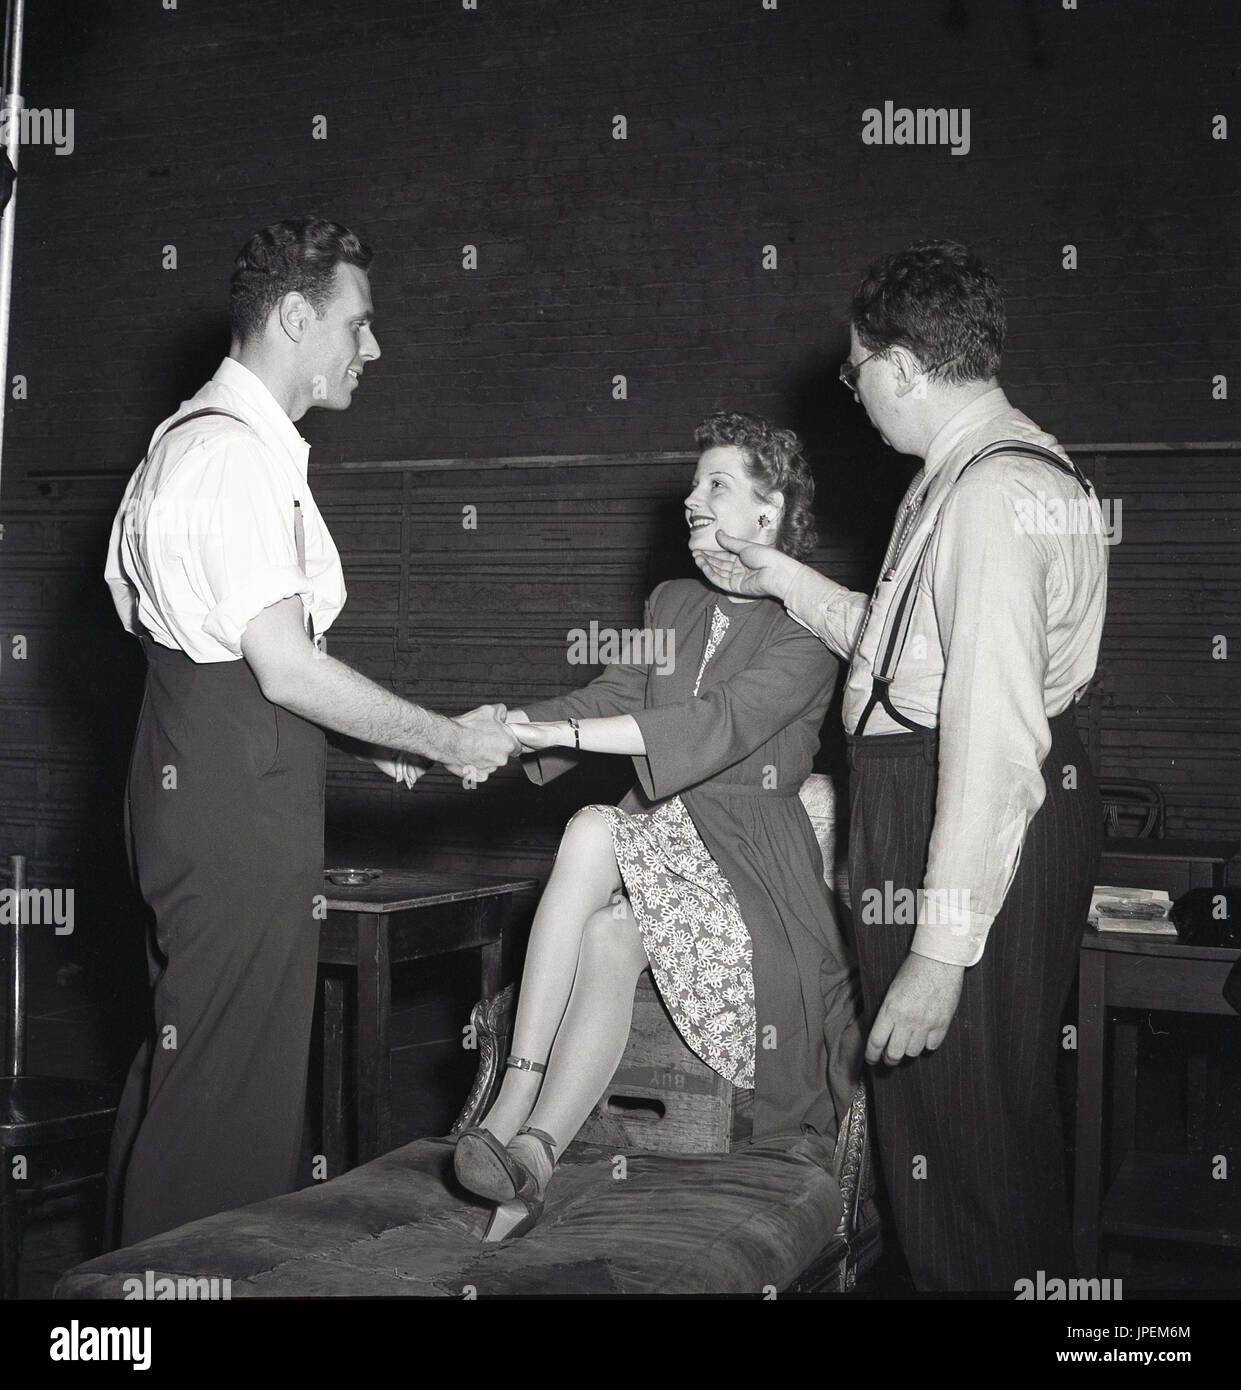 1940s, USA, New York, two actors with director, holding hands rehearsing a romantic theatre play. The attractive actress in dress, coat and heeled shoes is sitting on a beer box on top of a chaise longue. - Stock Image